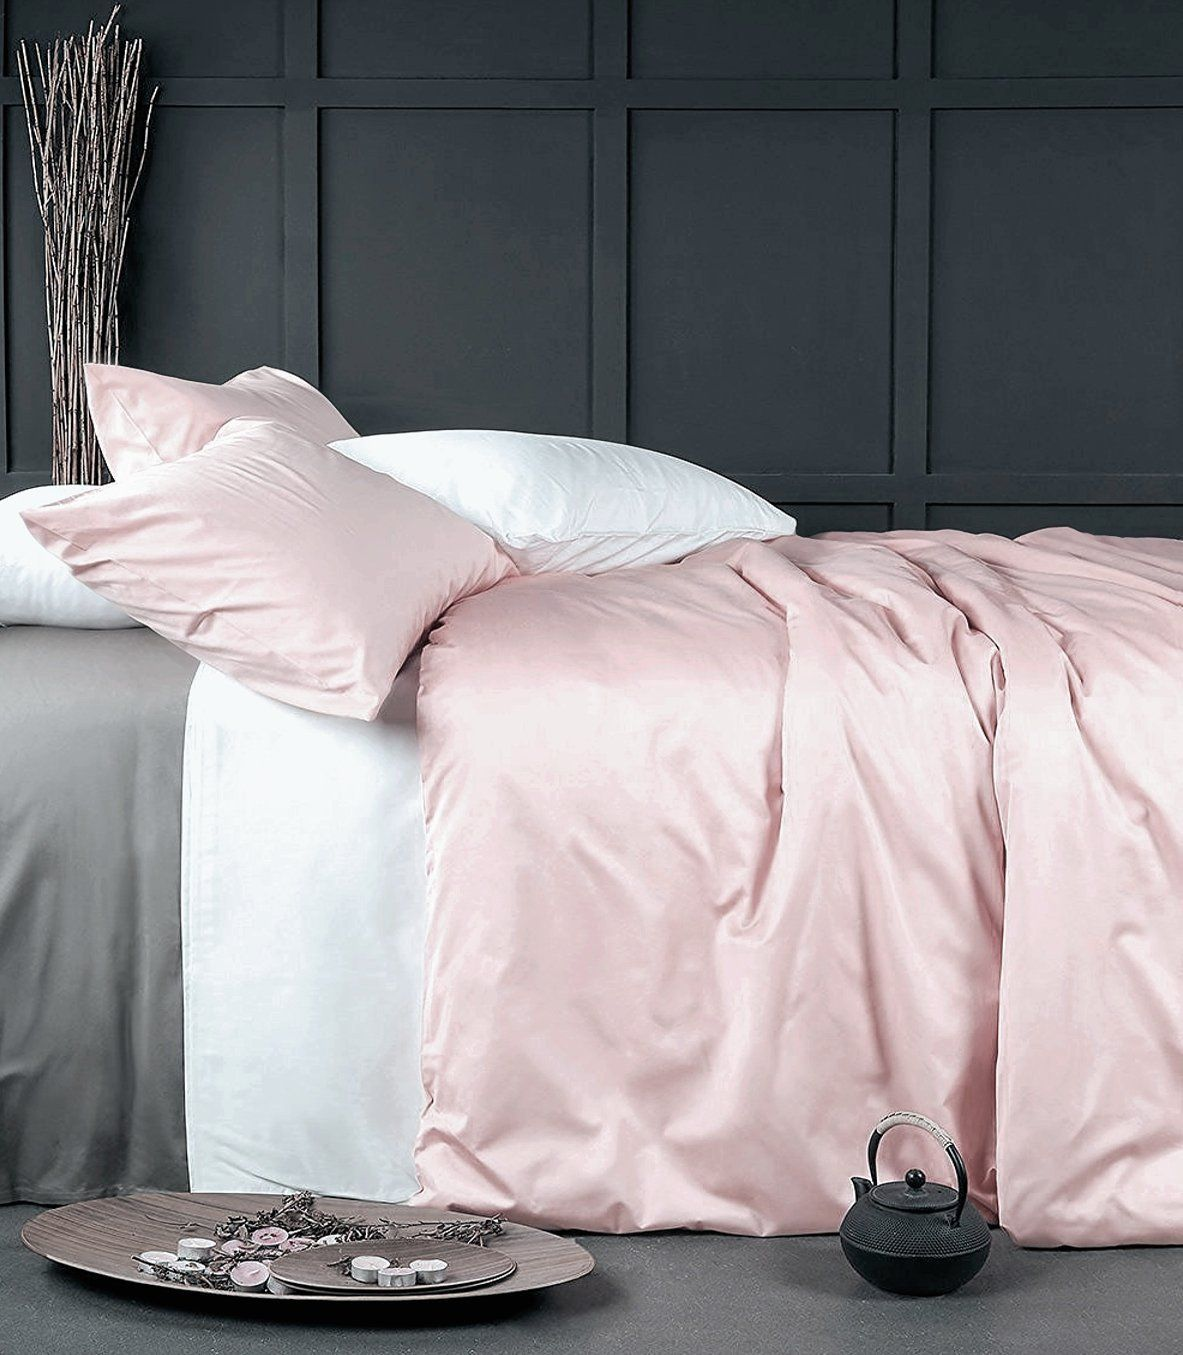 Jack Daniels Bettwäsche Rose Gold Duvet Cover Luxury Bedding Set High Thread Count